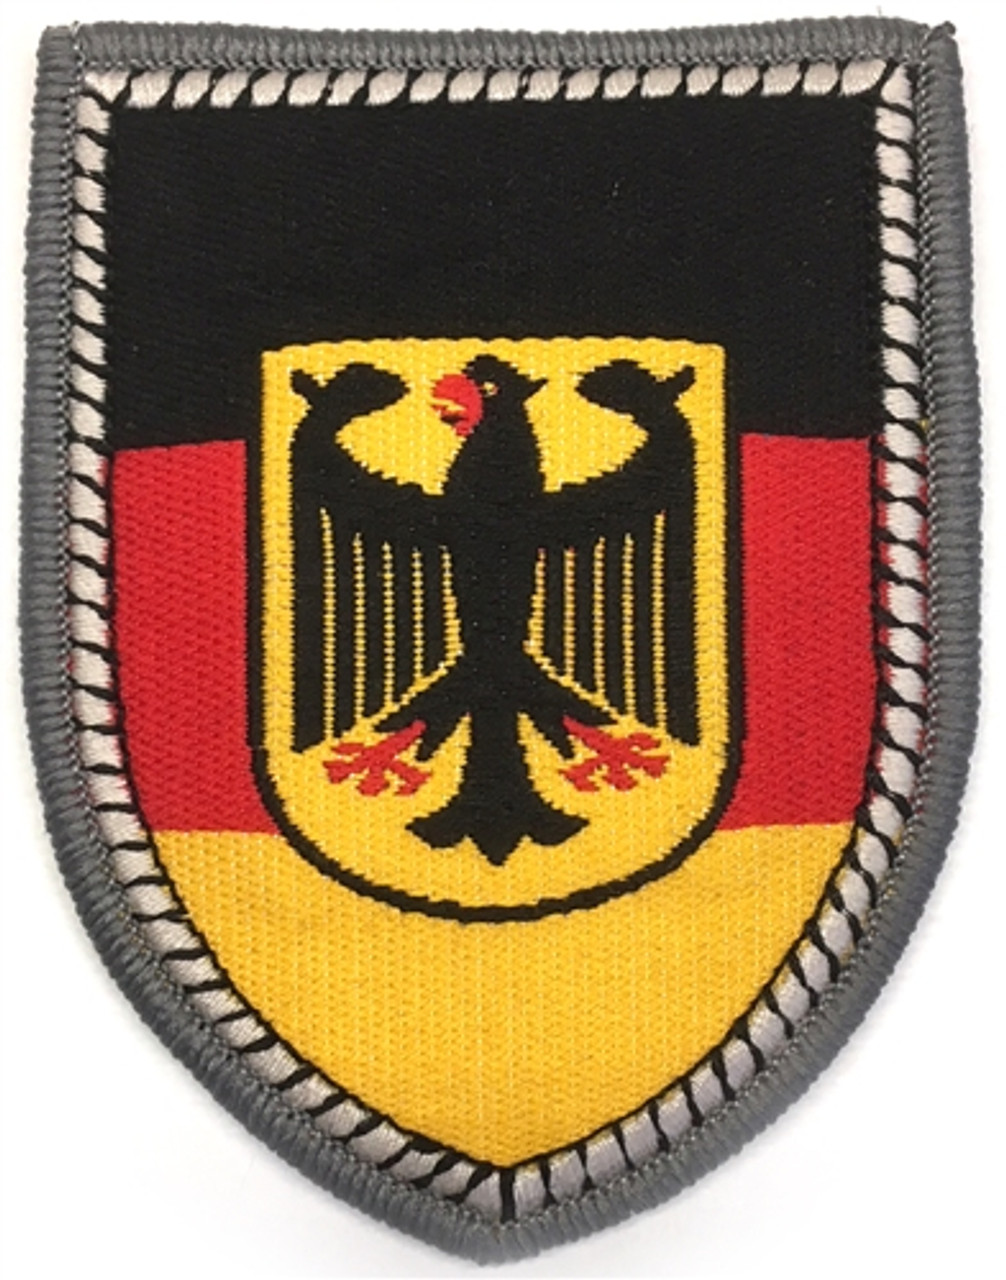 Bw Wachbataillon Sleeve Patch - New from Hessen Antique